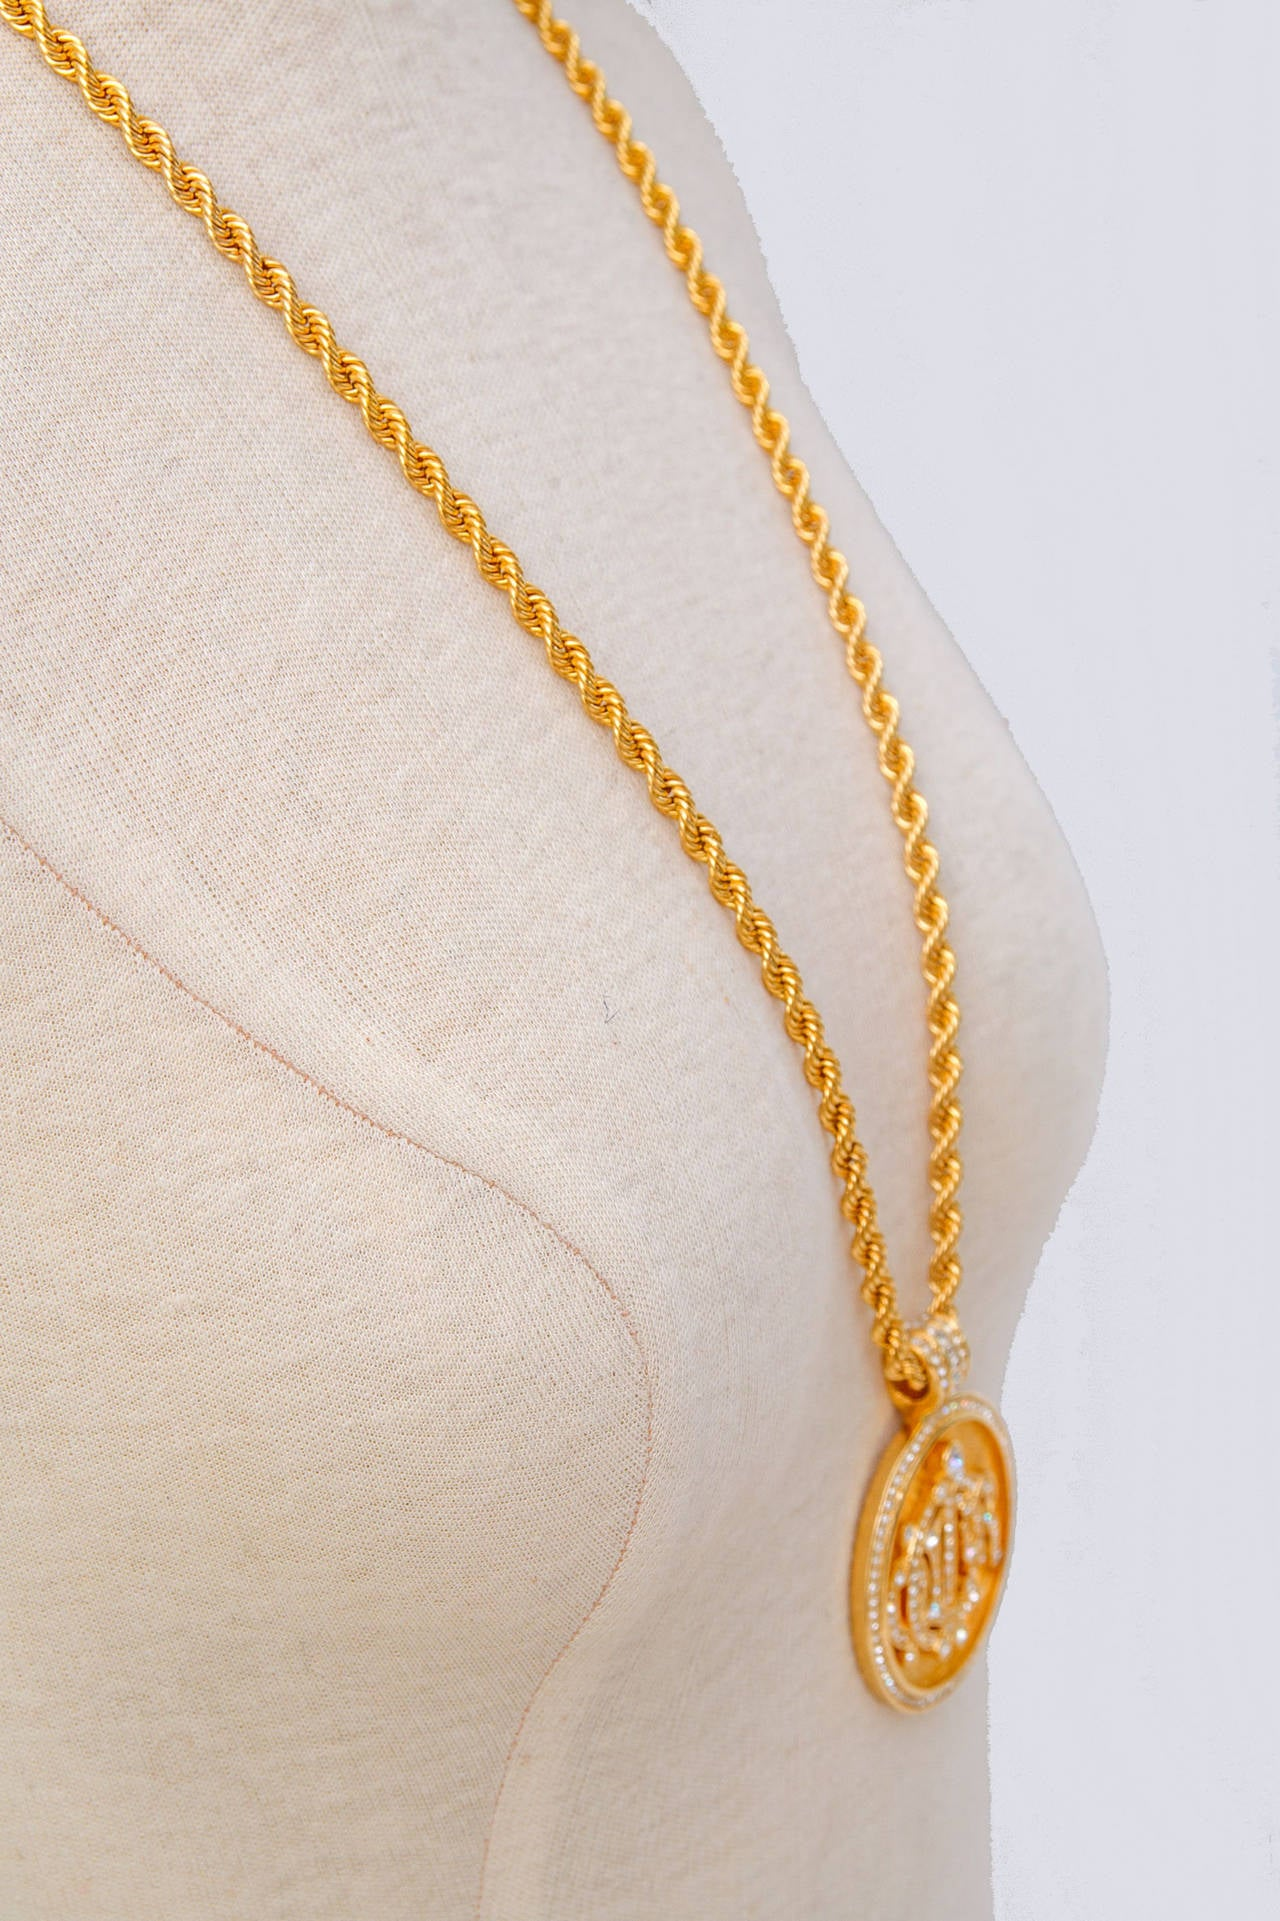 necklace pendant gb chain links gold en london of timeless hires rose vermeil large